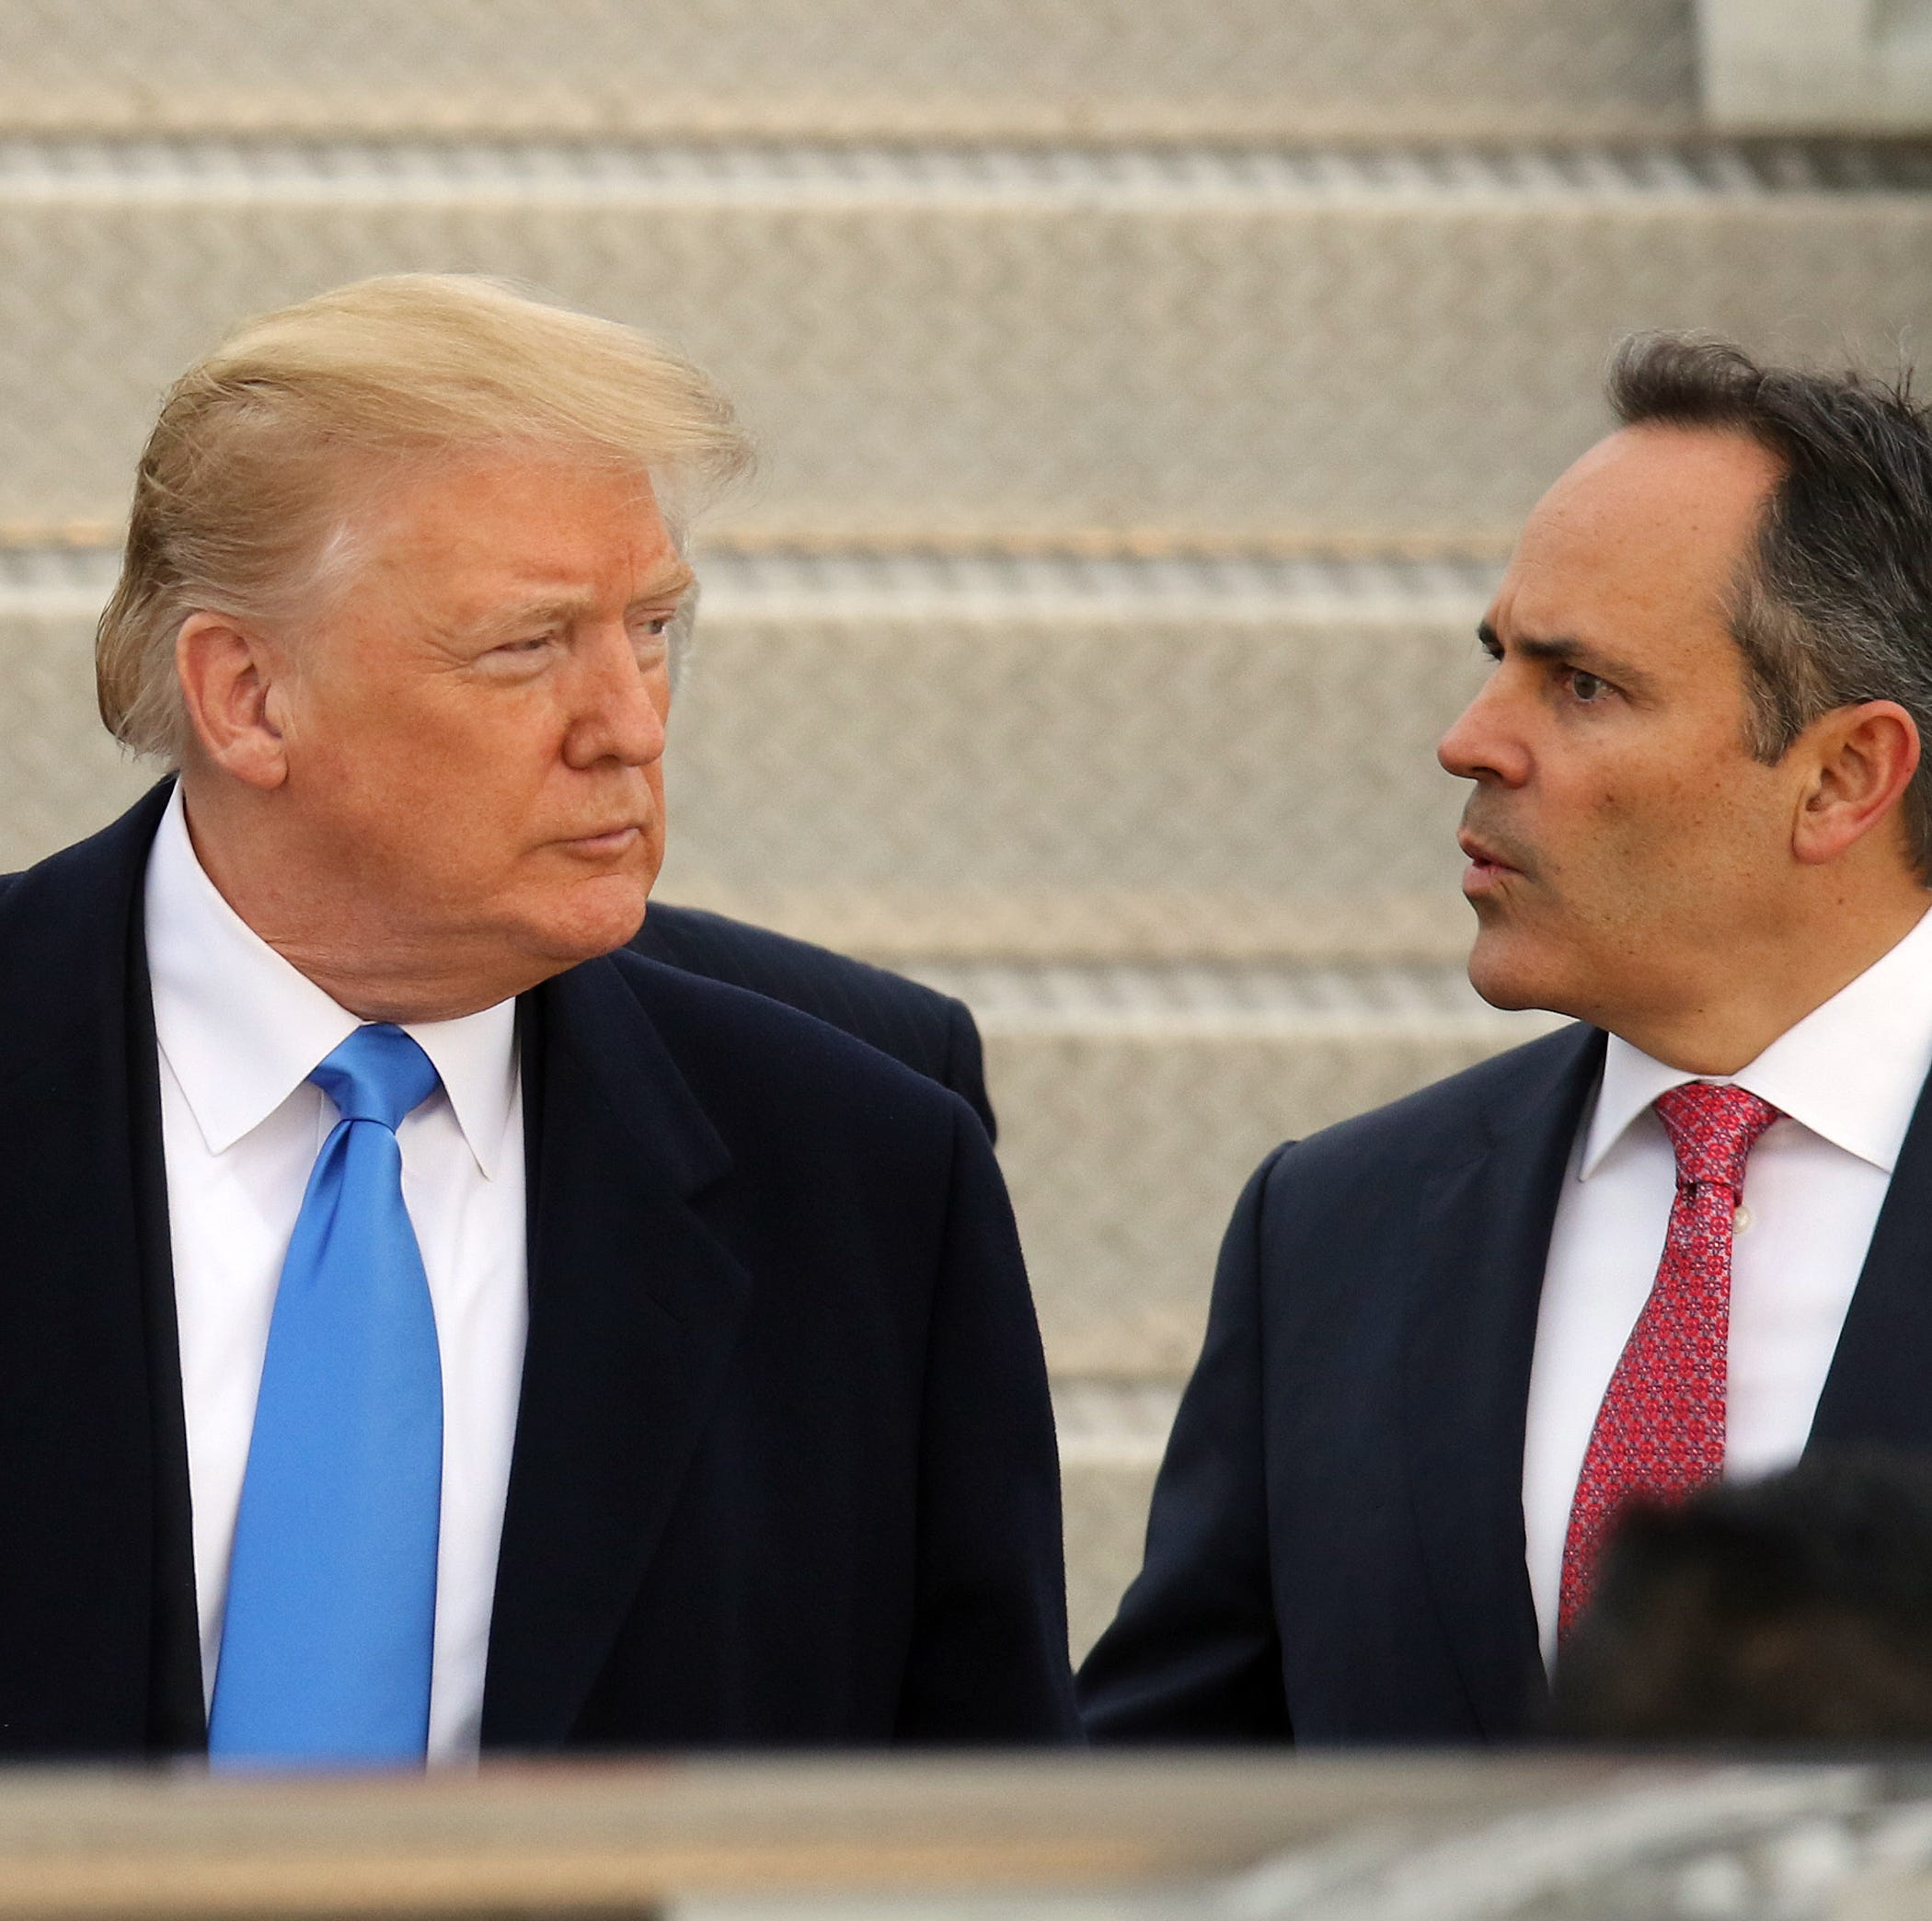 U-G-L-Y: Bevin vs. Beshear race is already negative as Trump's influence looms